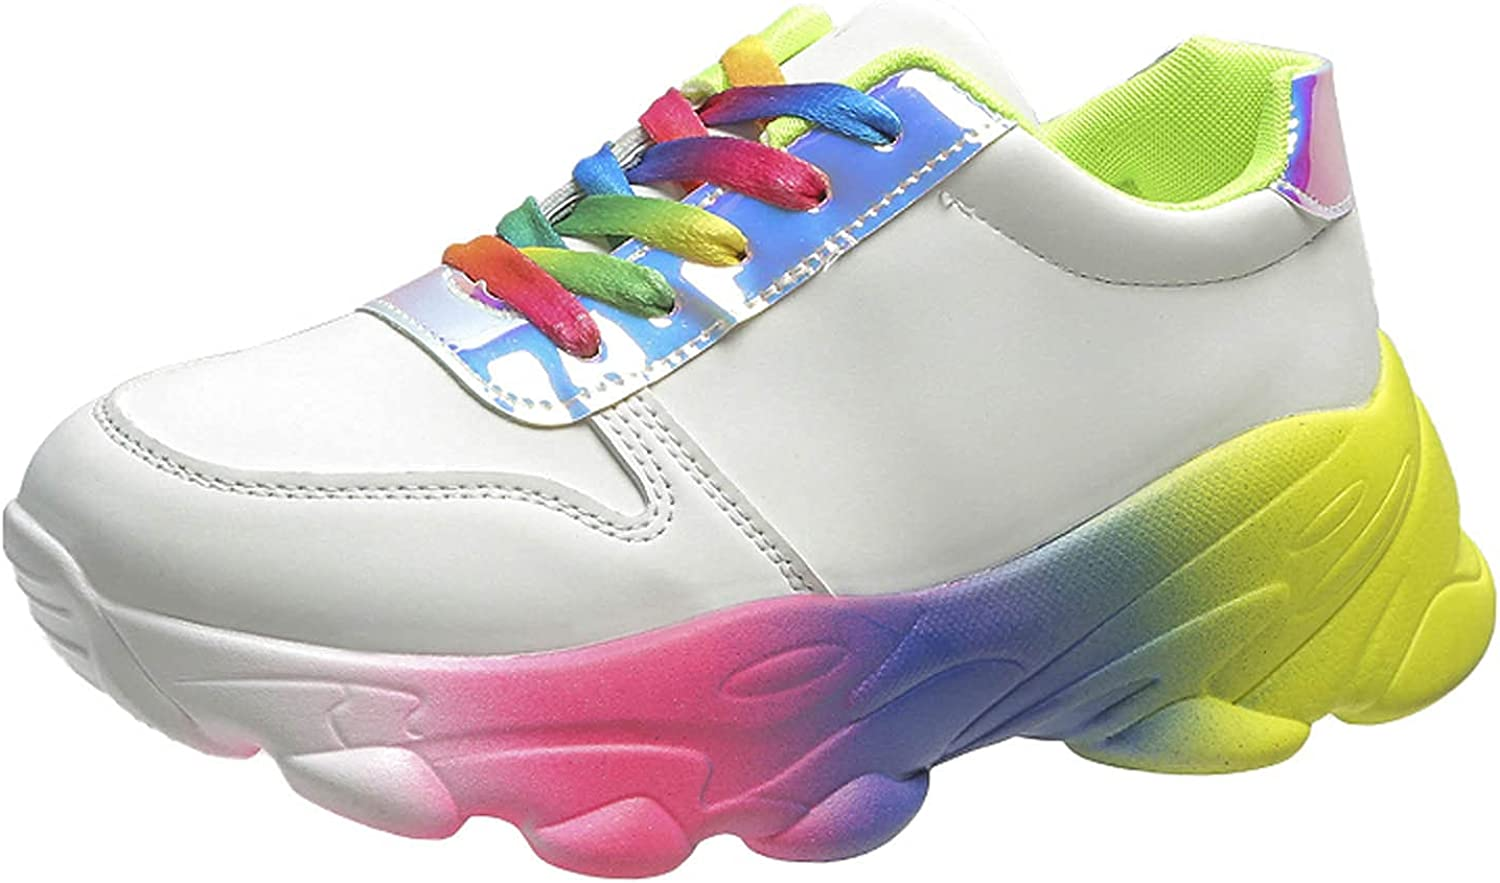 Womens Shoes 2021 Plus Size Thick-Soled Color Sports Casual Walking Shoes Comfortable Non-Slip Sneakers